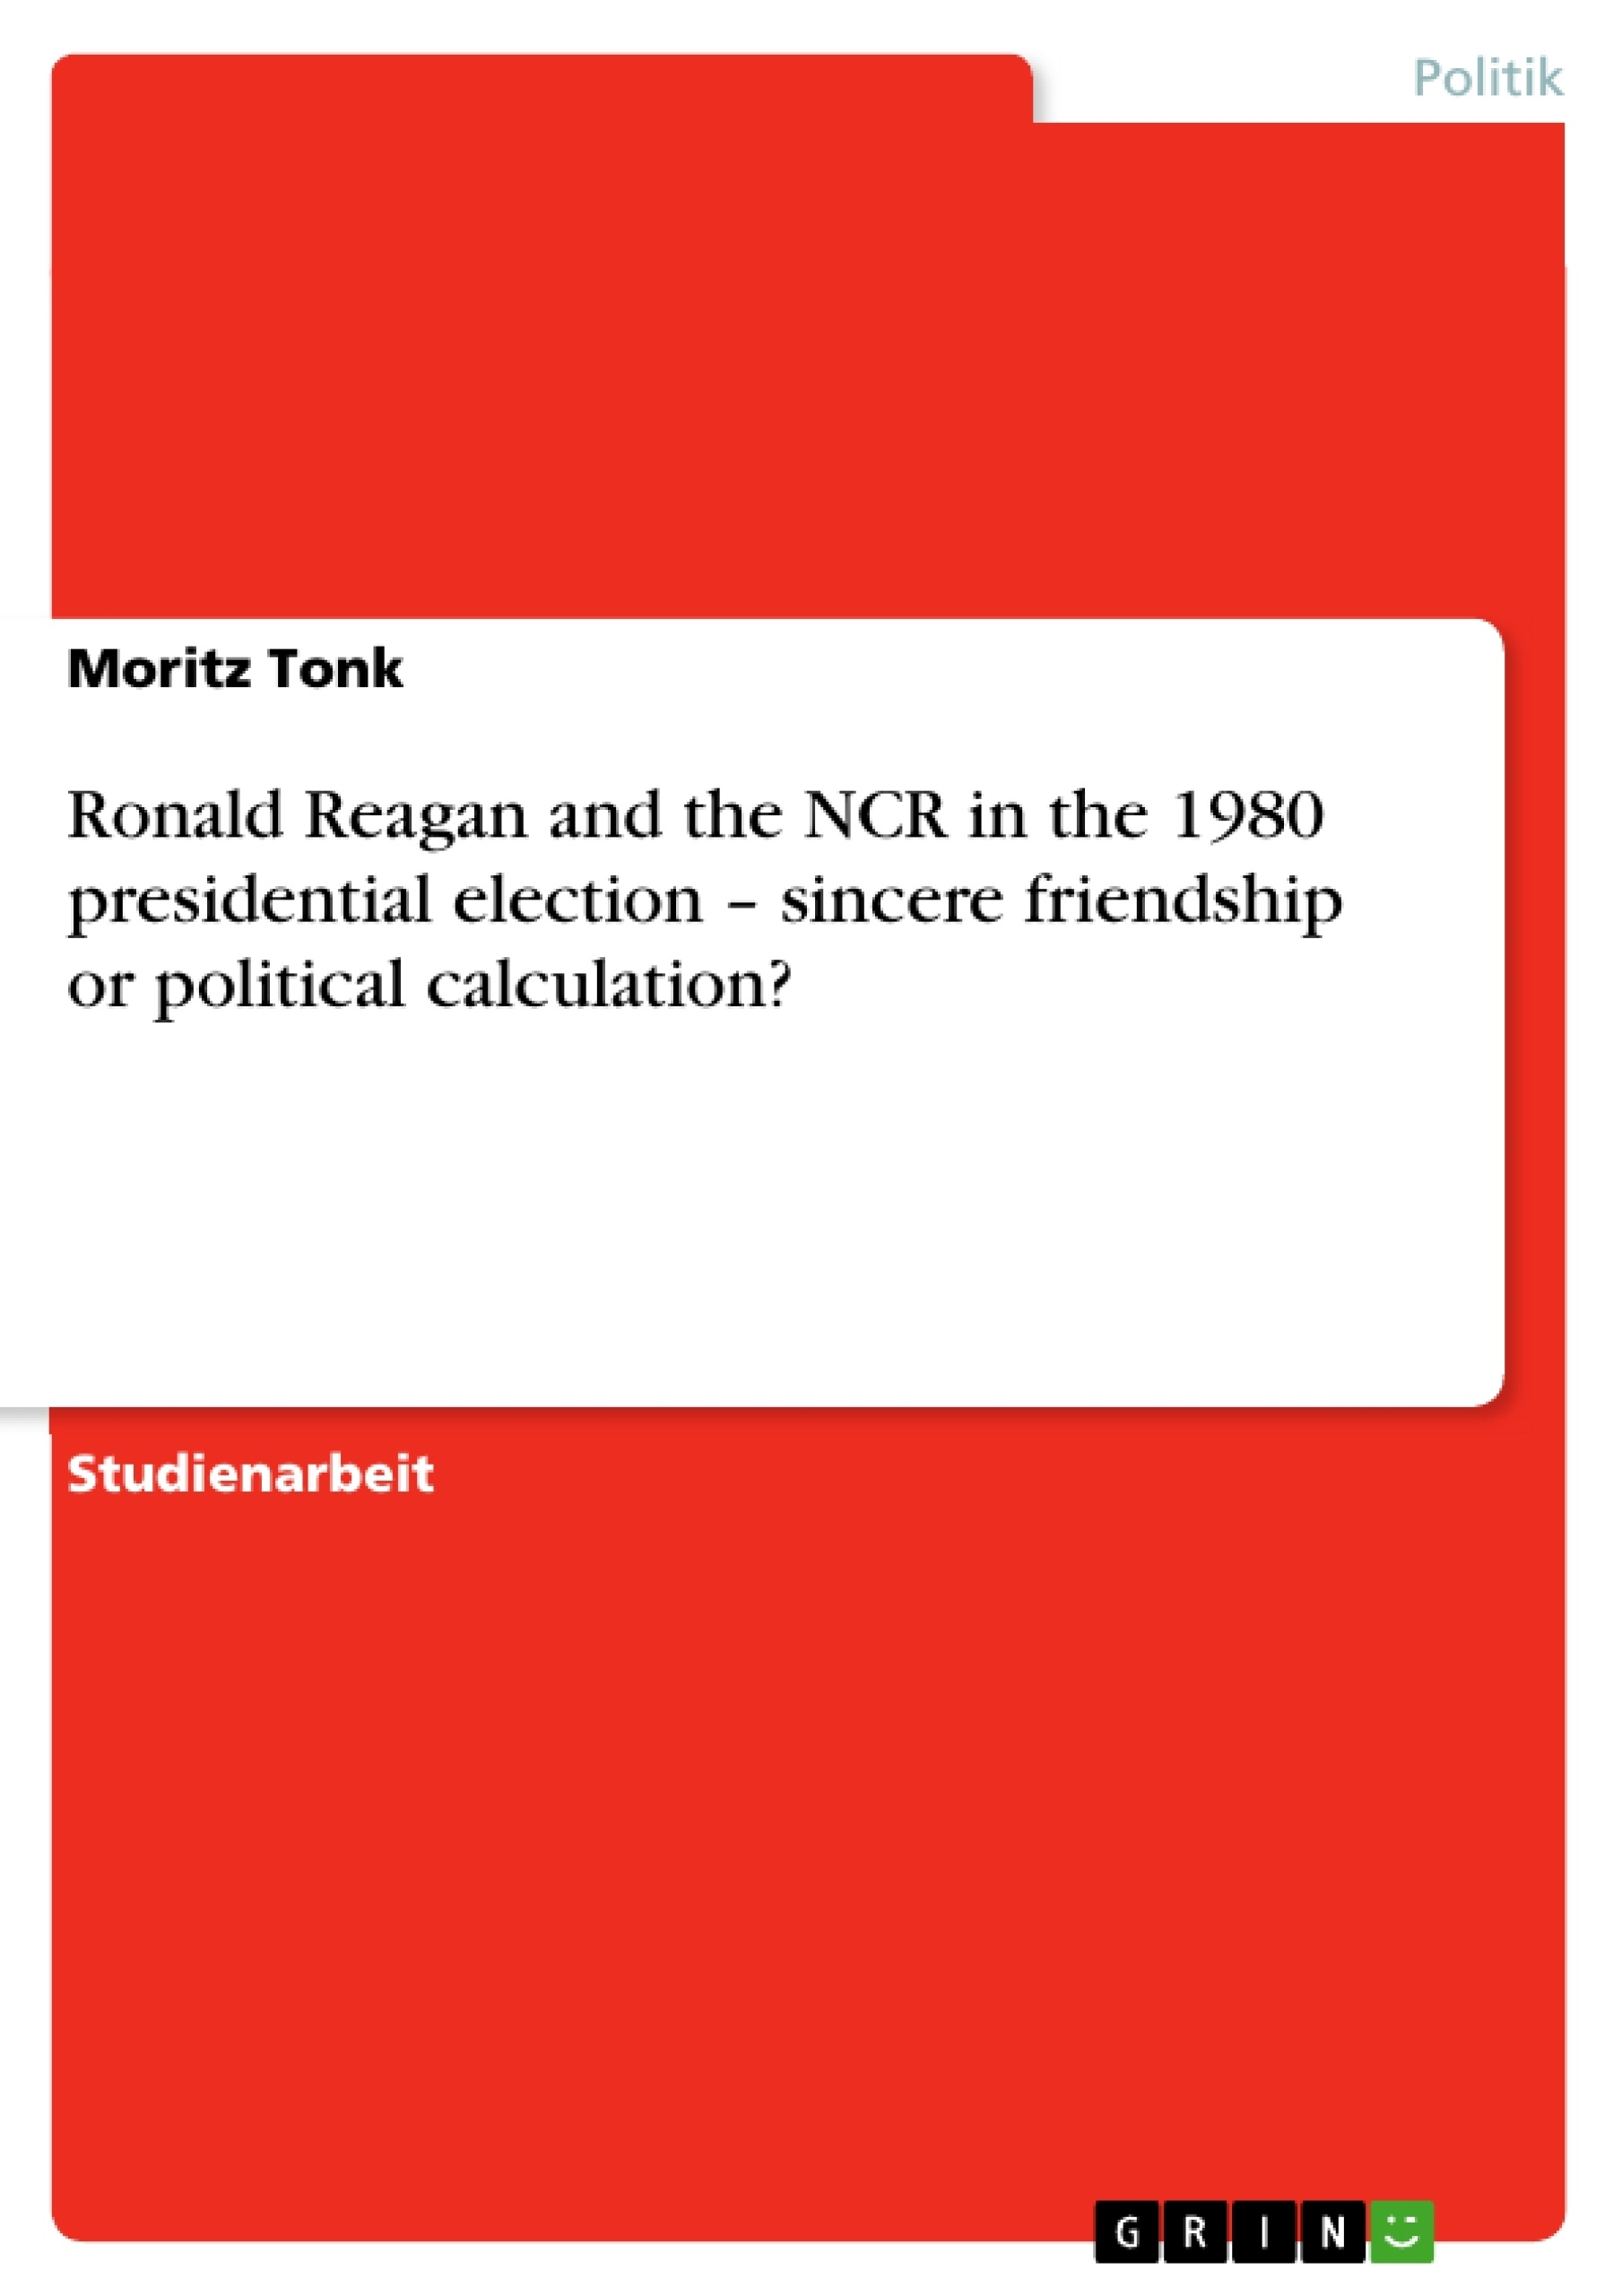 Titel: Ronald Reagan and the NCR in the 1980 presidential election – sincere friendship or political calculation?